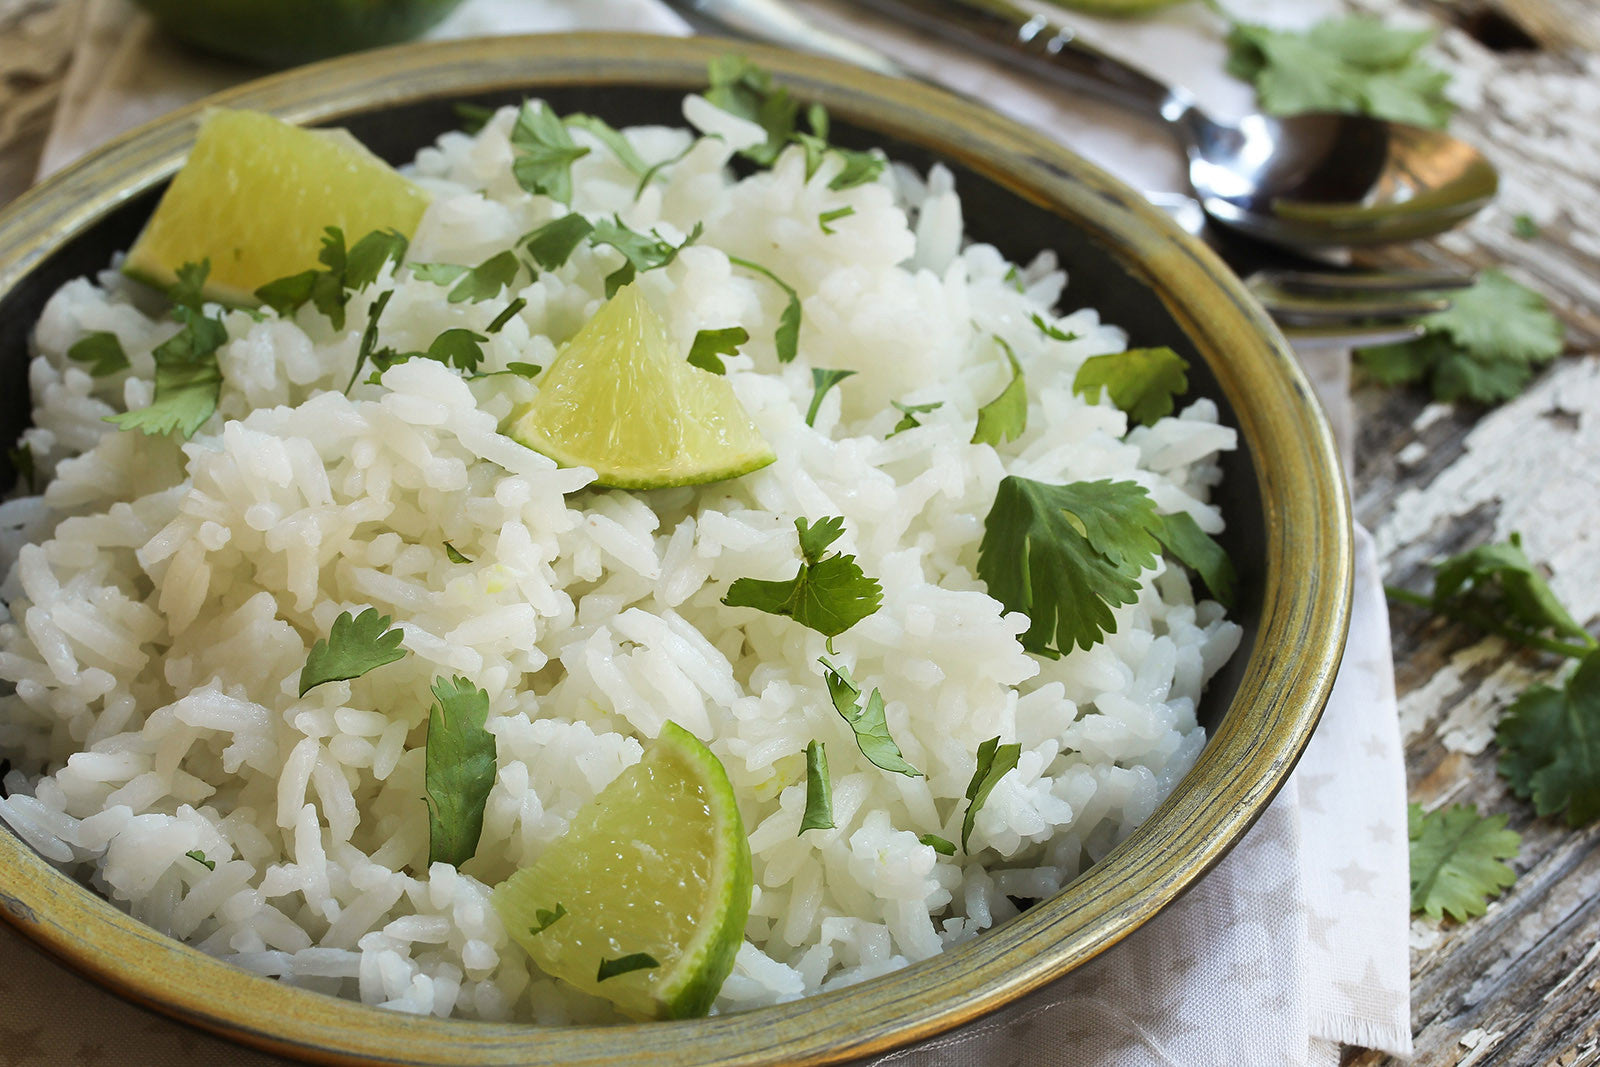 Cilantro Lime Rice Like Never Before in Clay